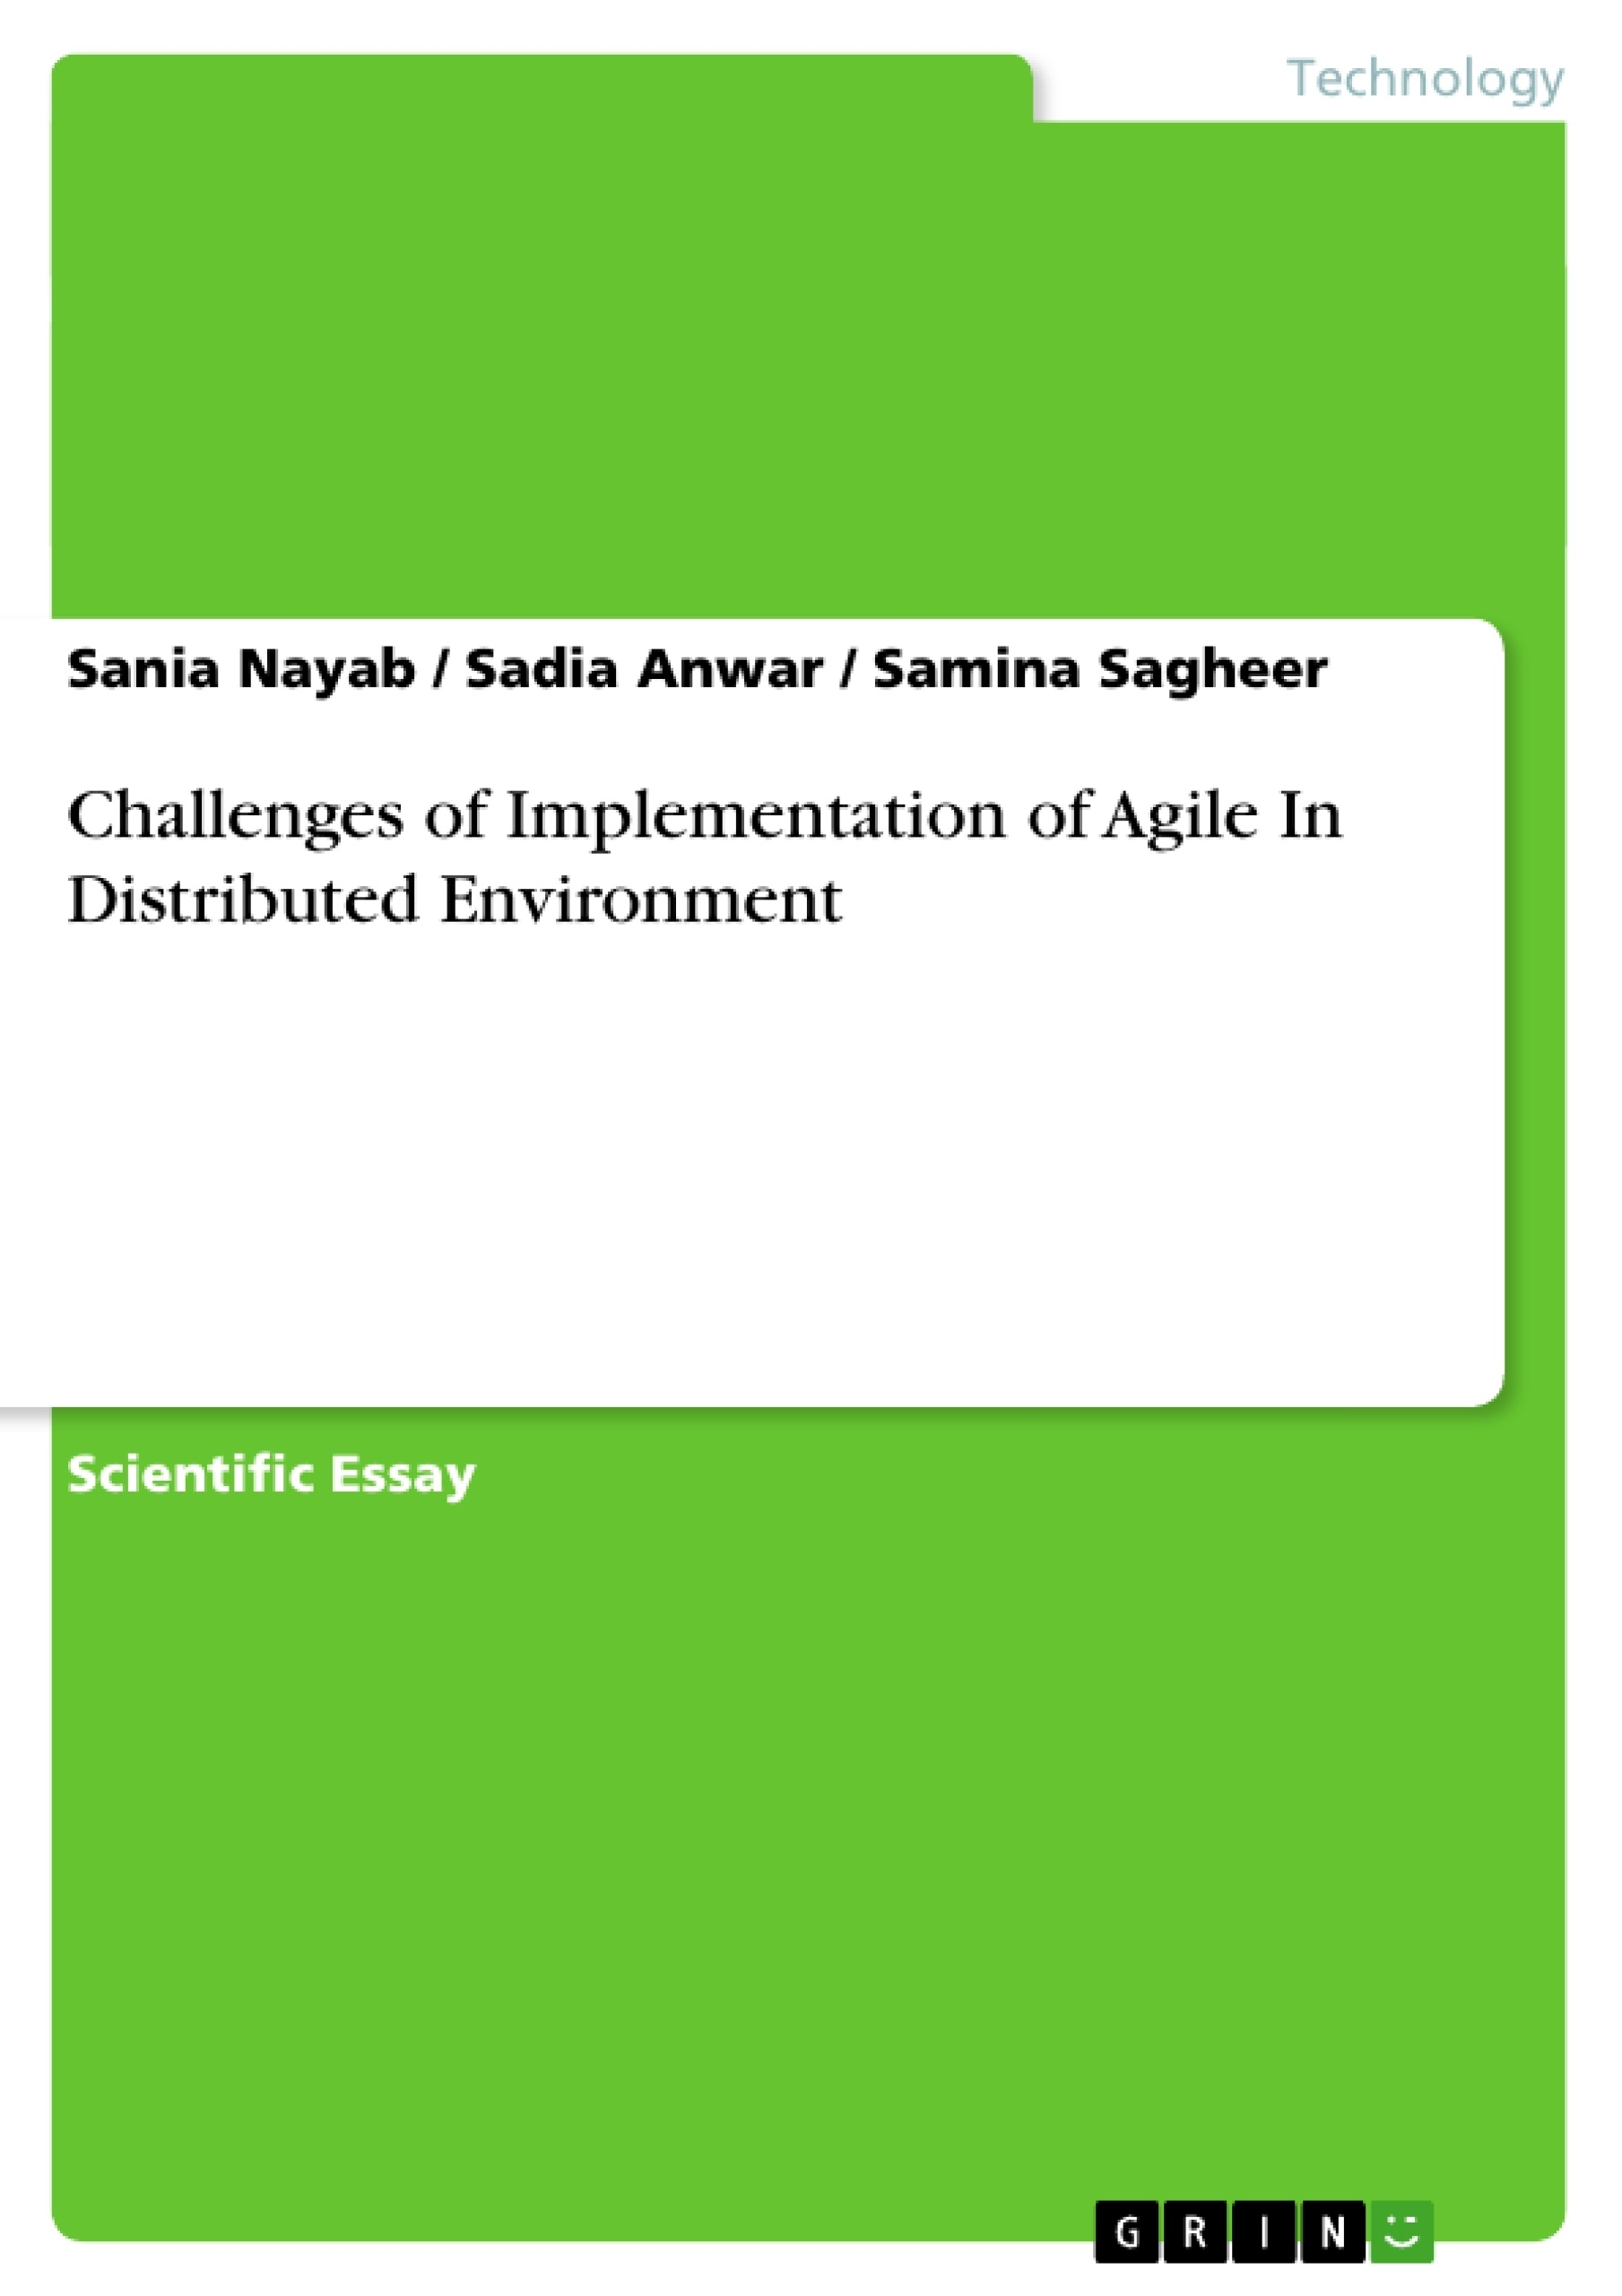 Title: Challenges of Implementation of Agile In Distributed Environment